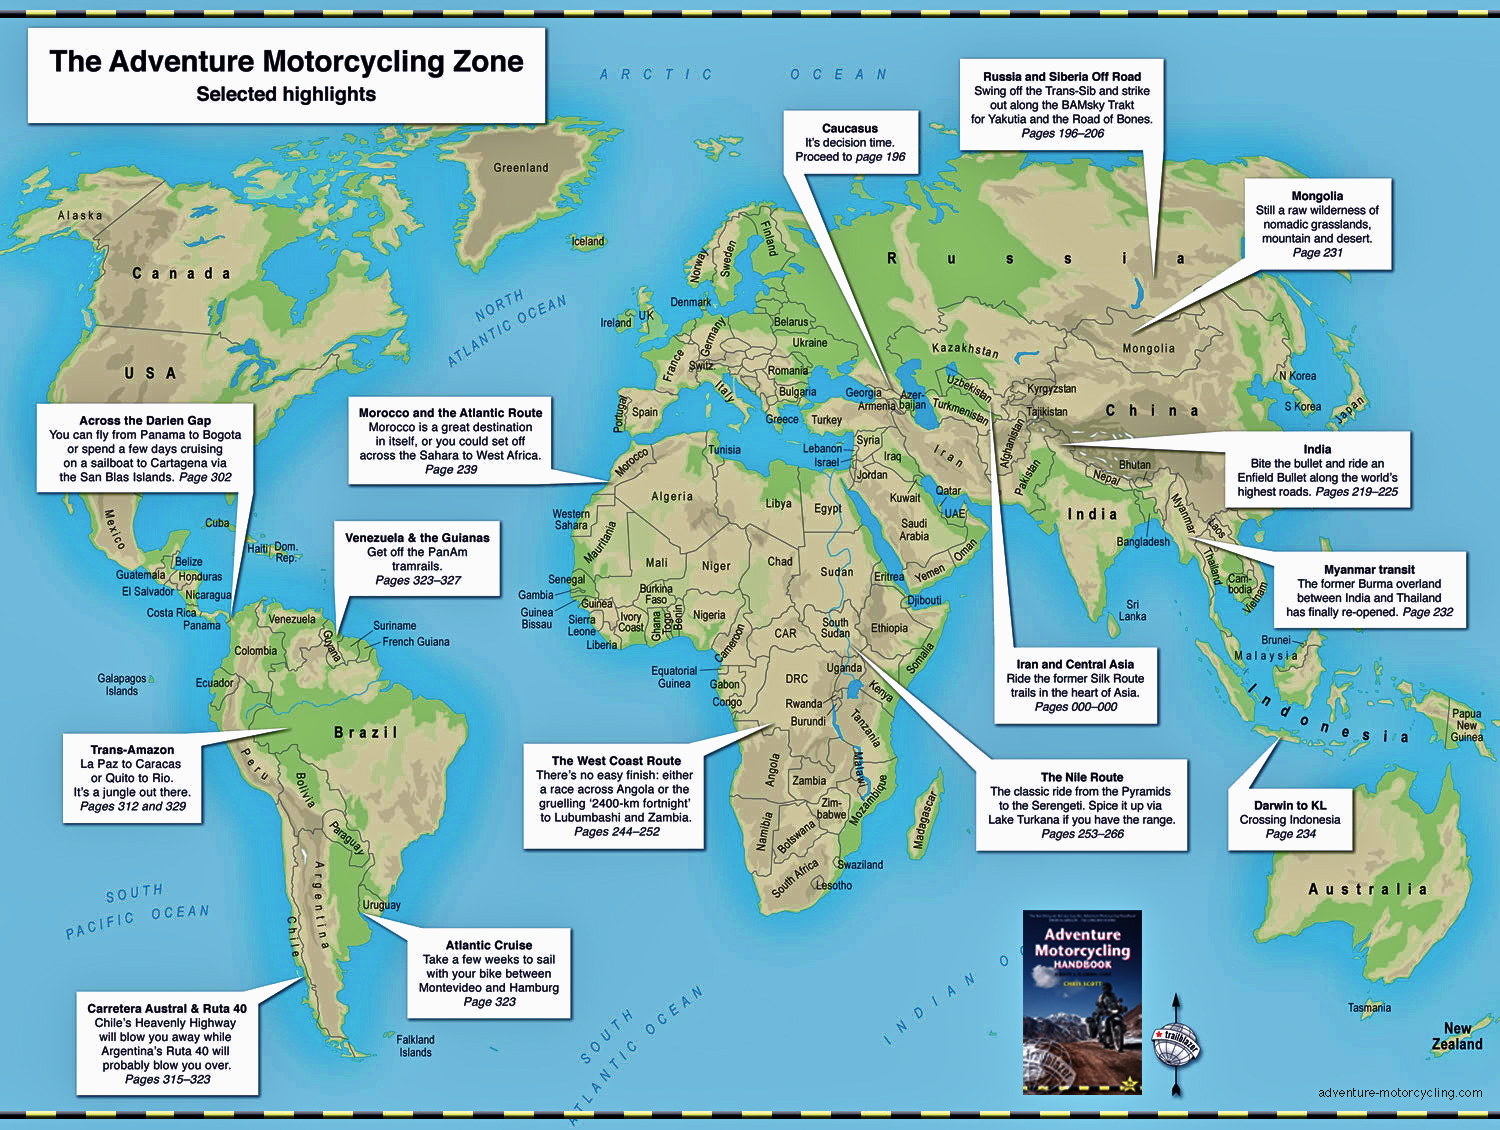 The Adventure Motorcycling Zone